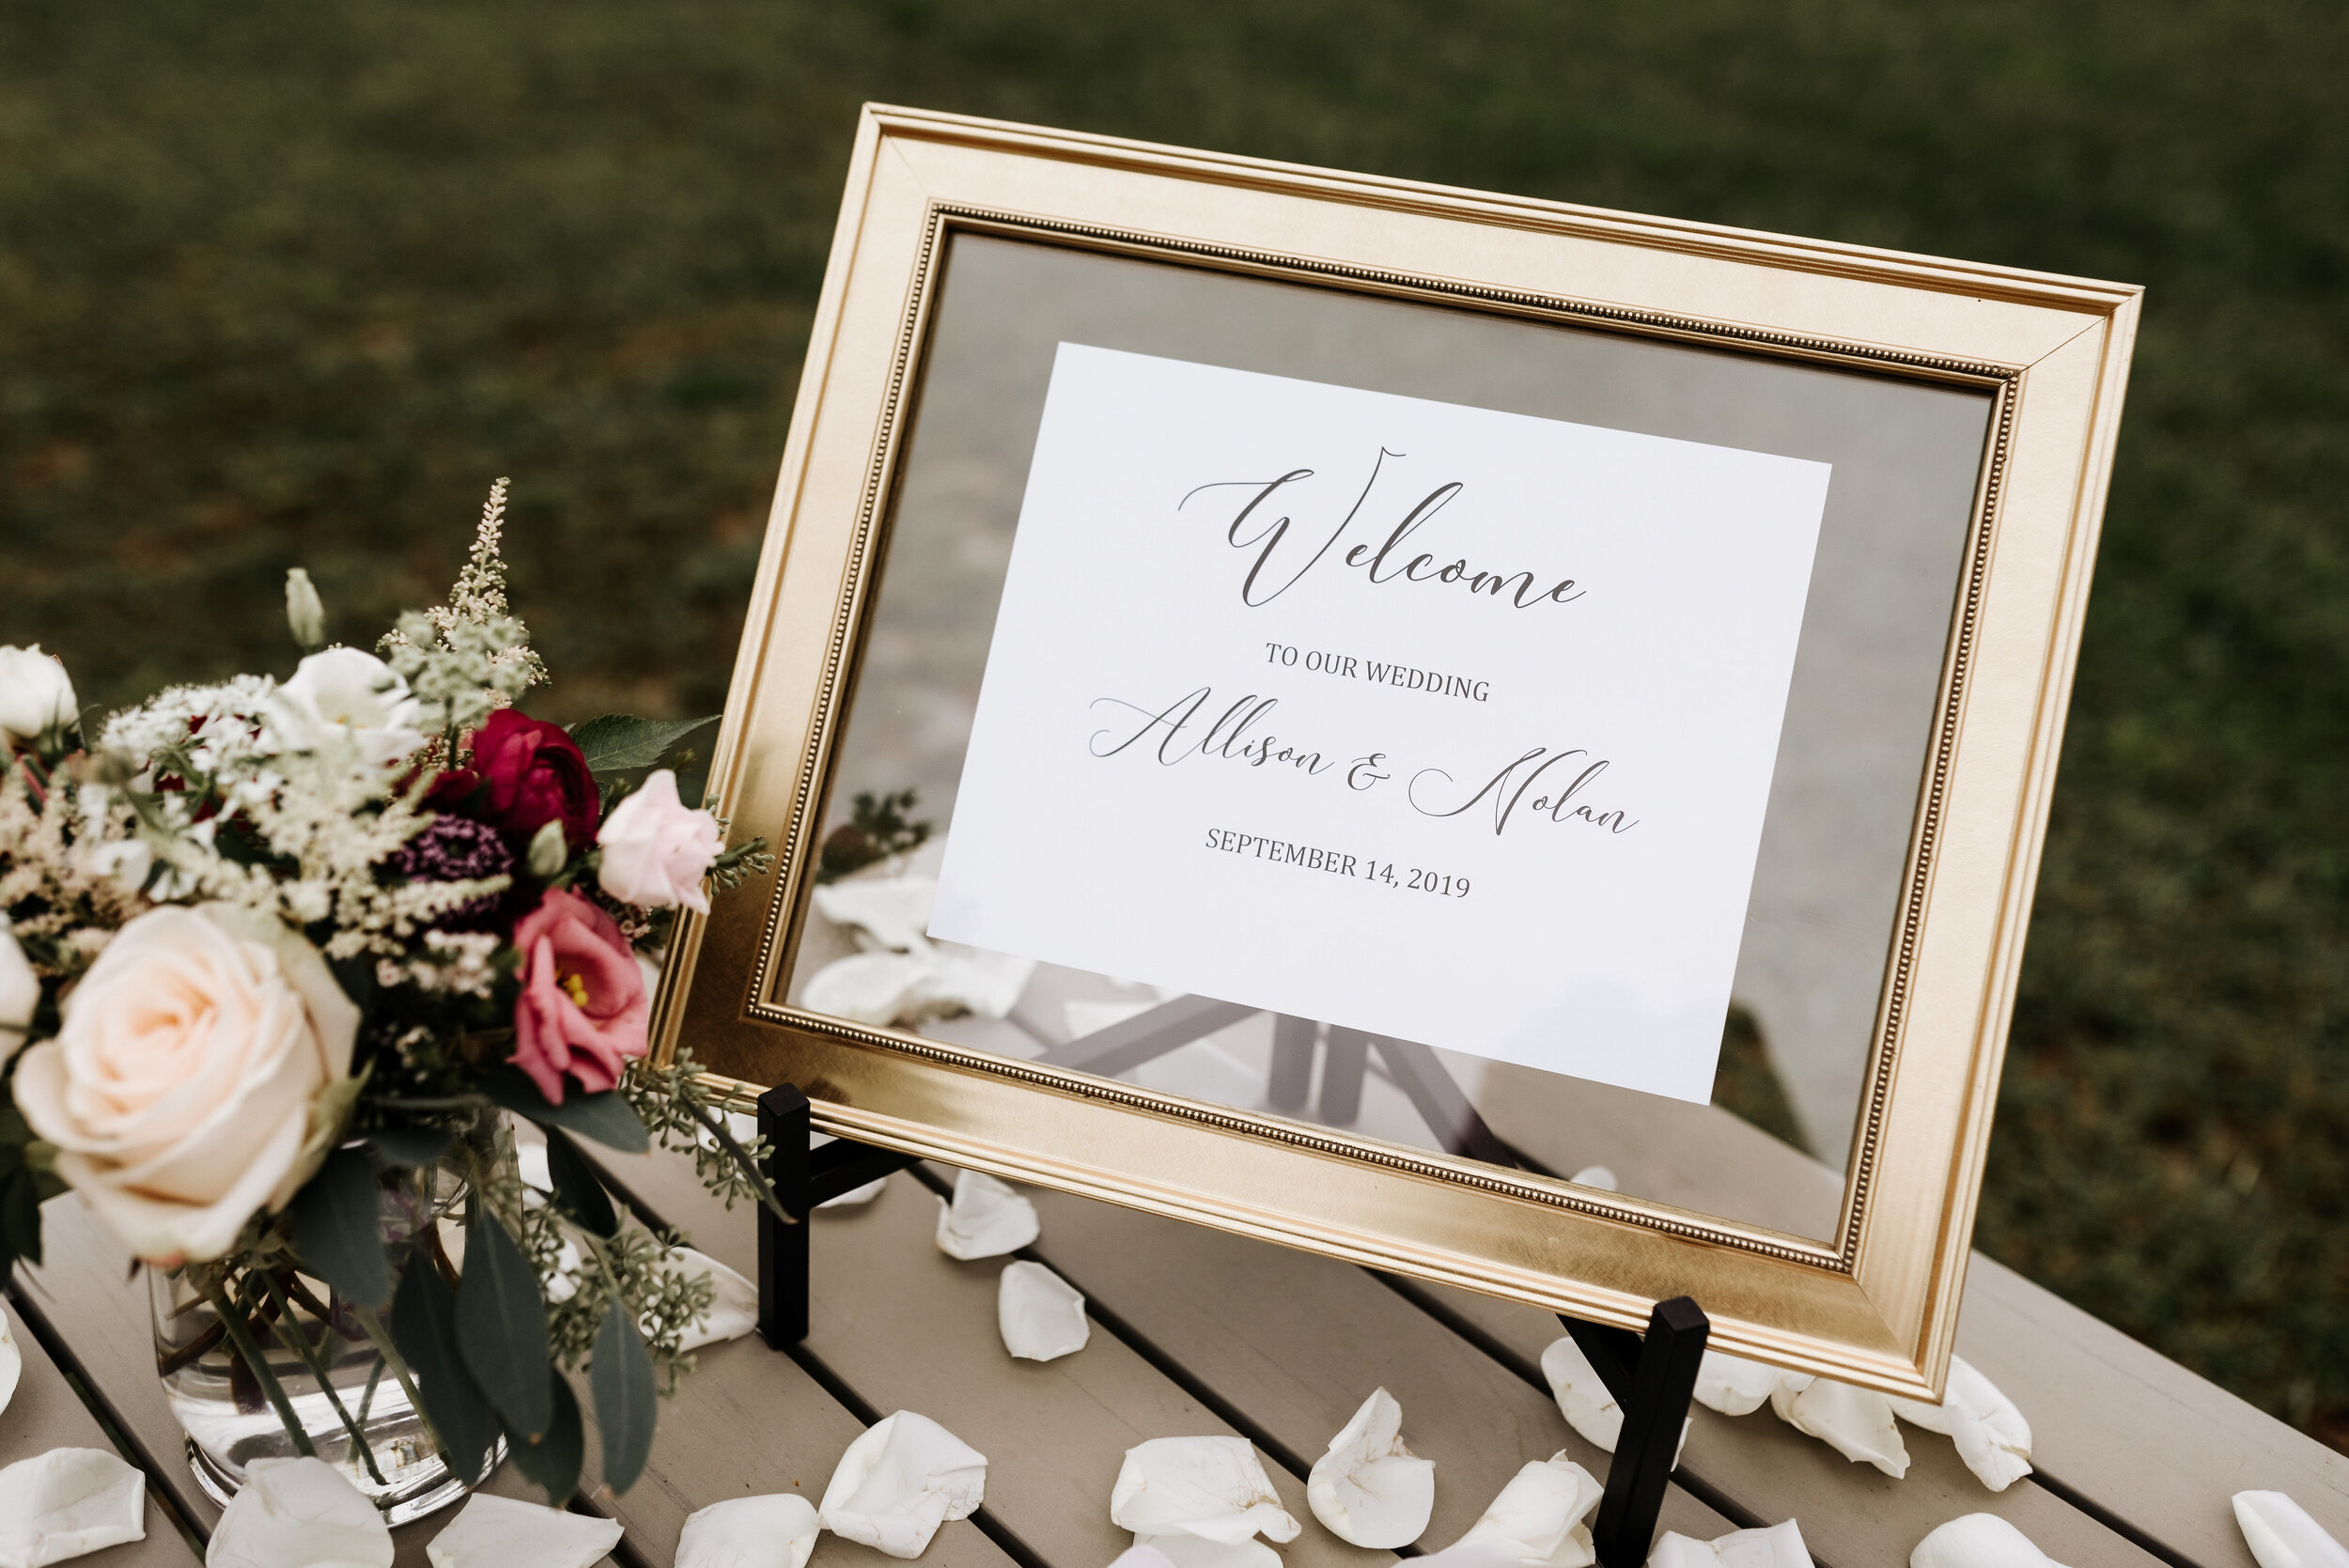 Allison_Nolan_Moss_Vineyards_Wedding_Charlottesville_Virginia_Photography_by_V_23.jpg